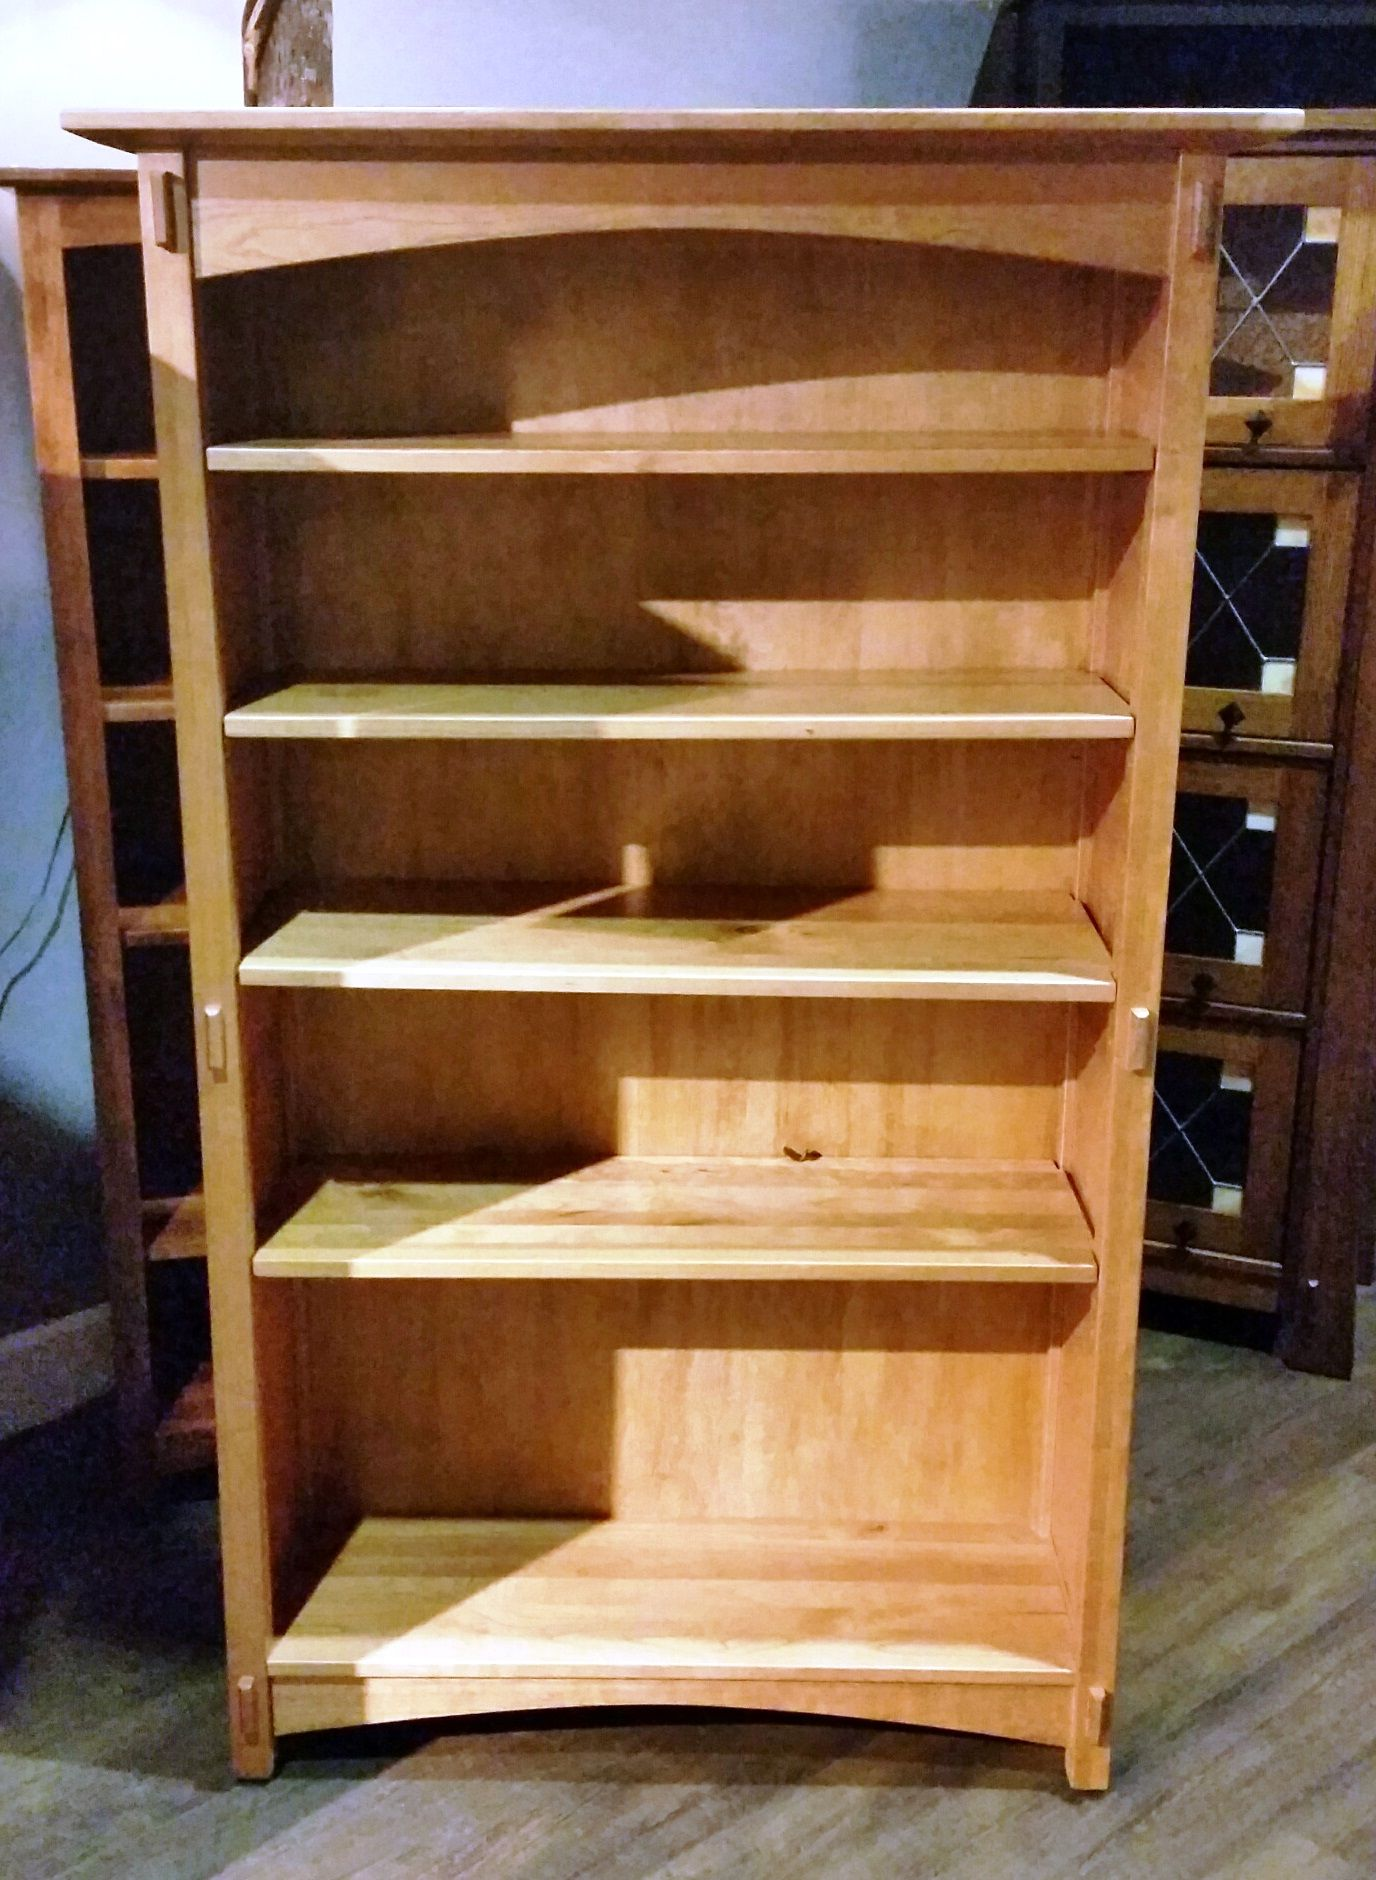 Check Out The Springhill Bookcase From Treeforms Furniture Gallery!